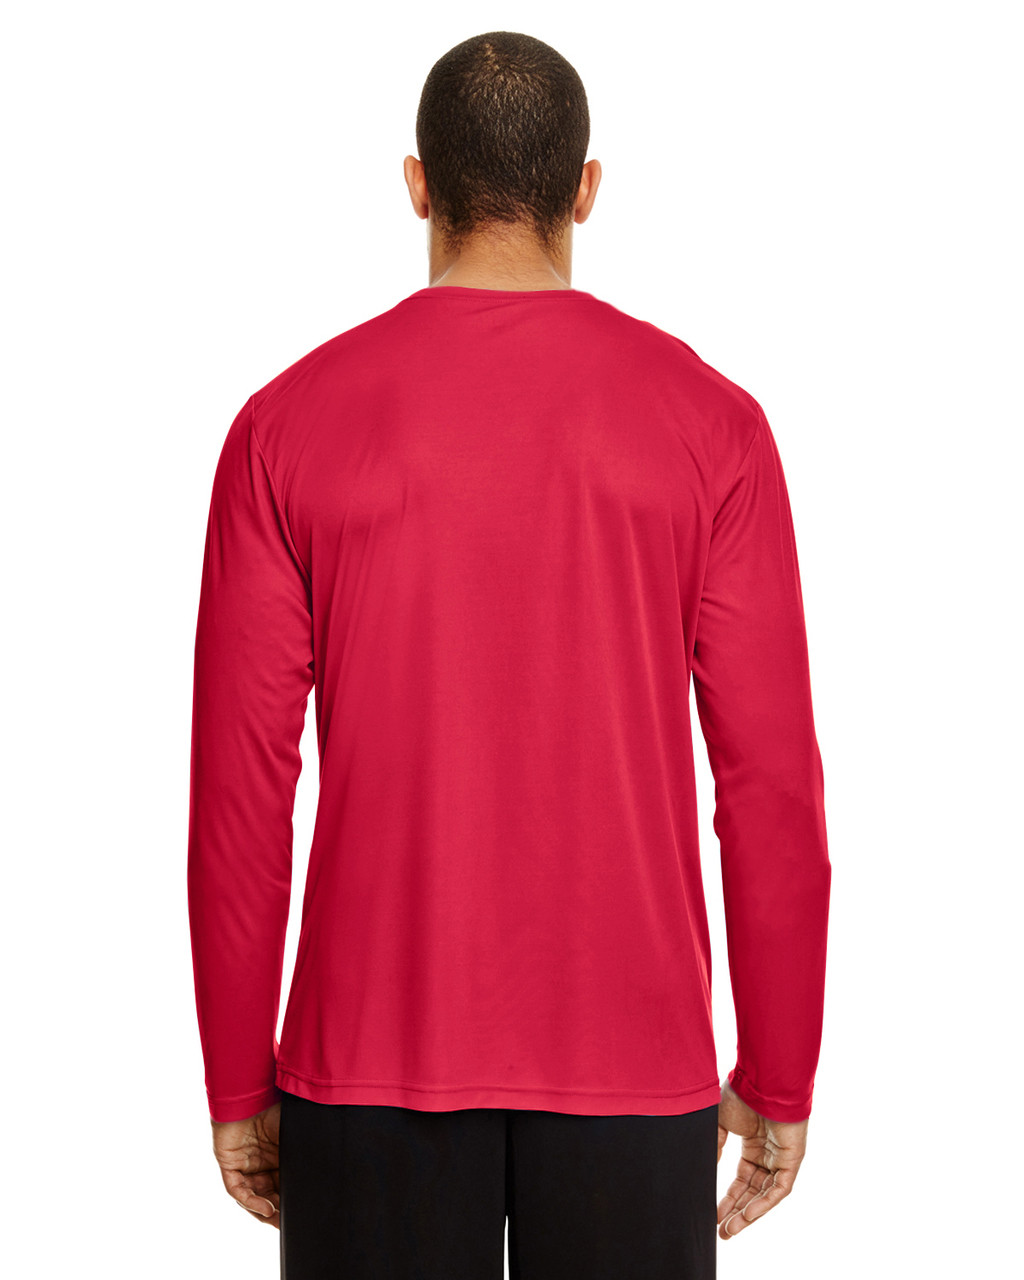 Sport Red, Back - TT11L Team 365 Men's Zone Performance Long Sleeve T-Shirt | BlankClothing.ca